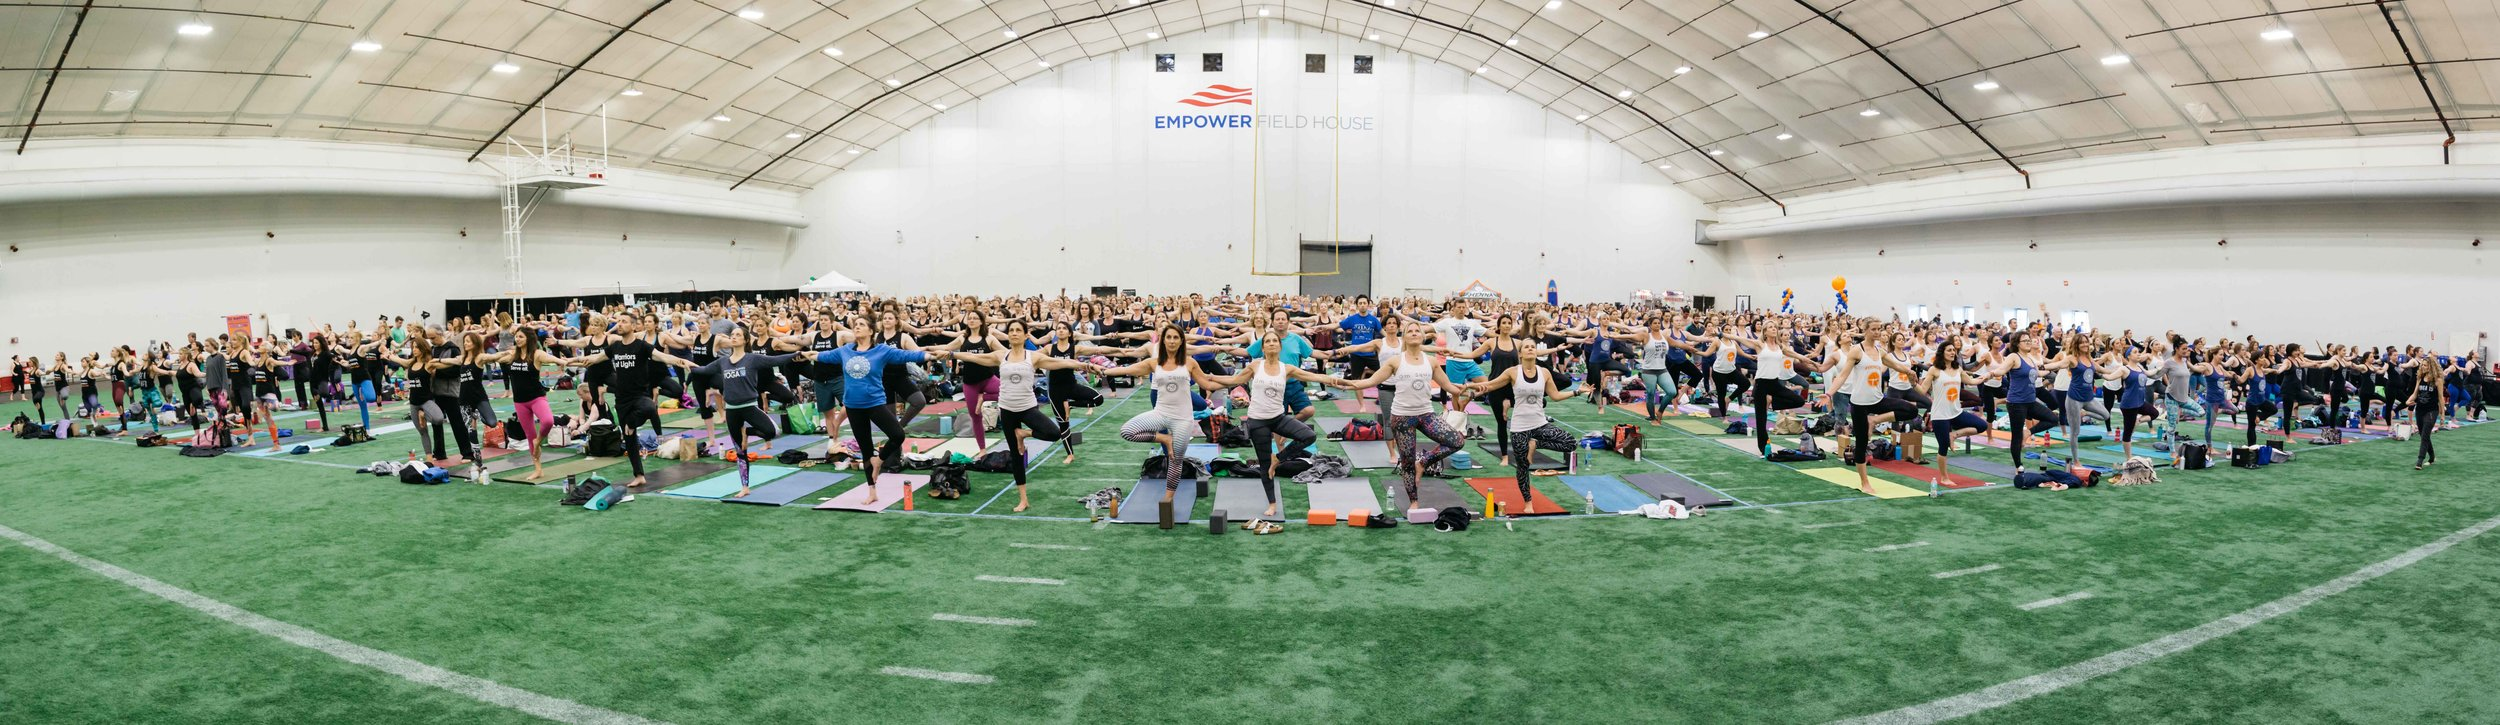 Over 900 yogis linked arm in arm to support Boston Children's Hospital Wellness Center.